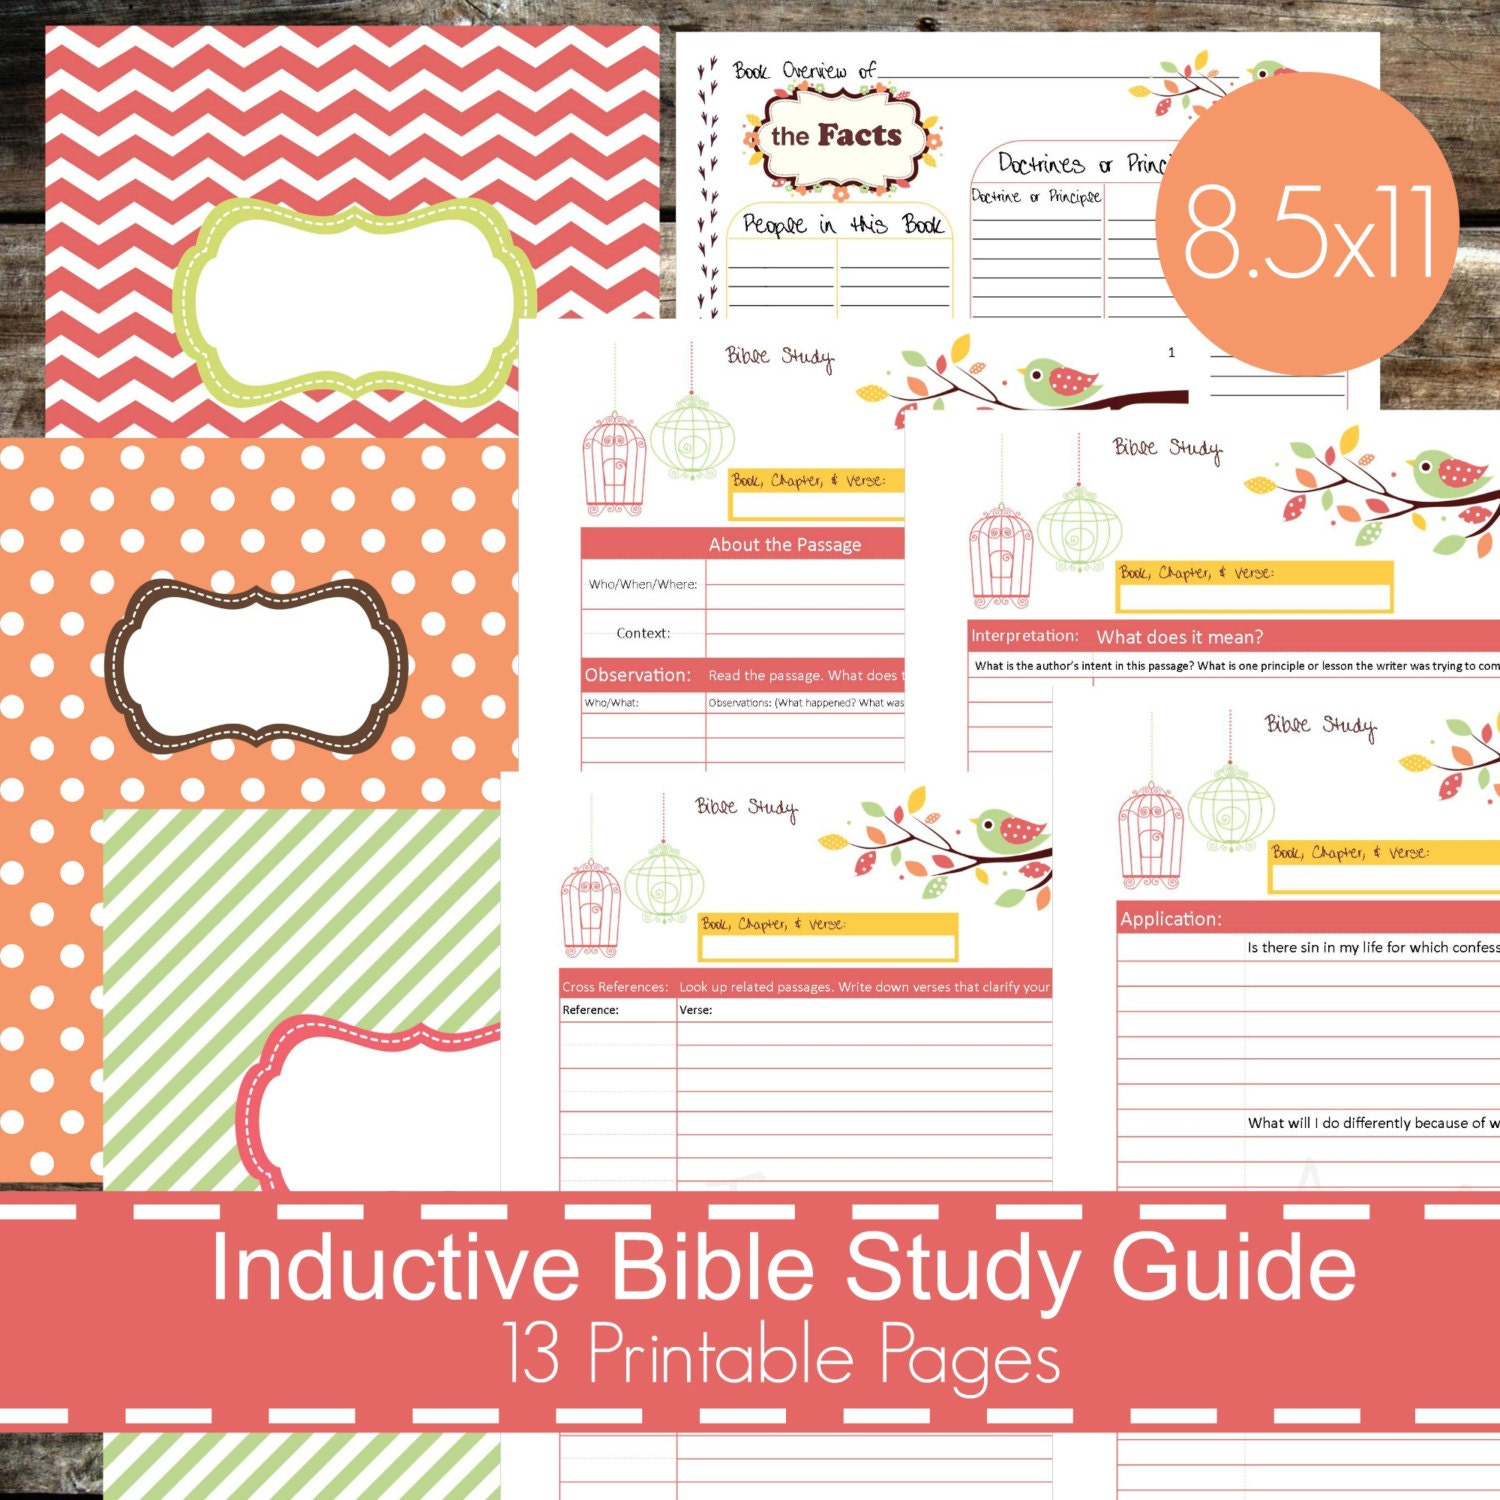 picture relating to Printable Bible Study Guides named Inductive Bible Analyze Lead Printables PDF, Christian bible investigate, bible magazine, devotional marketing consultant, bible analyze planner - Fowl Concept